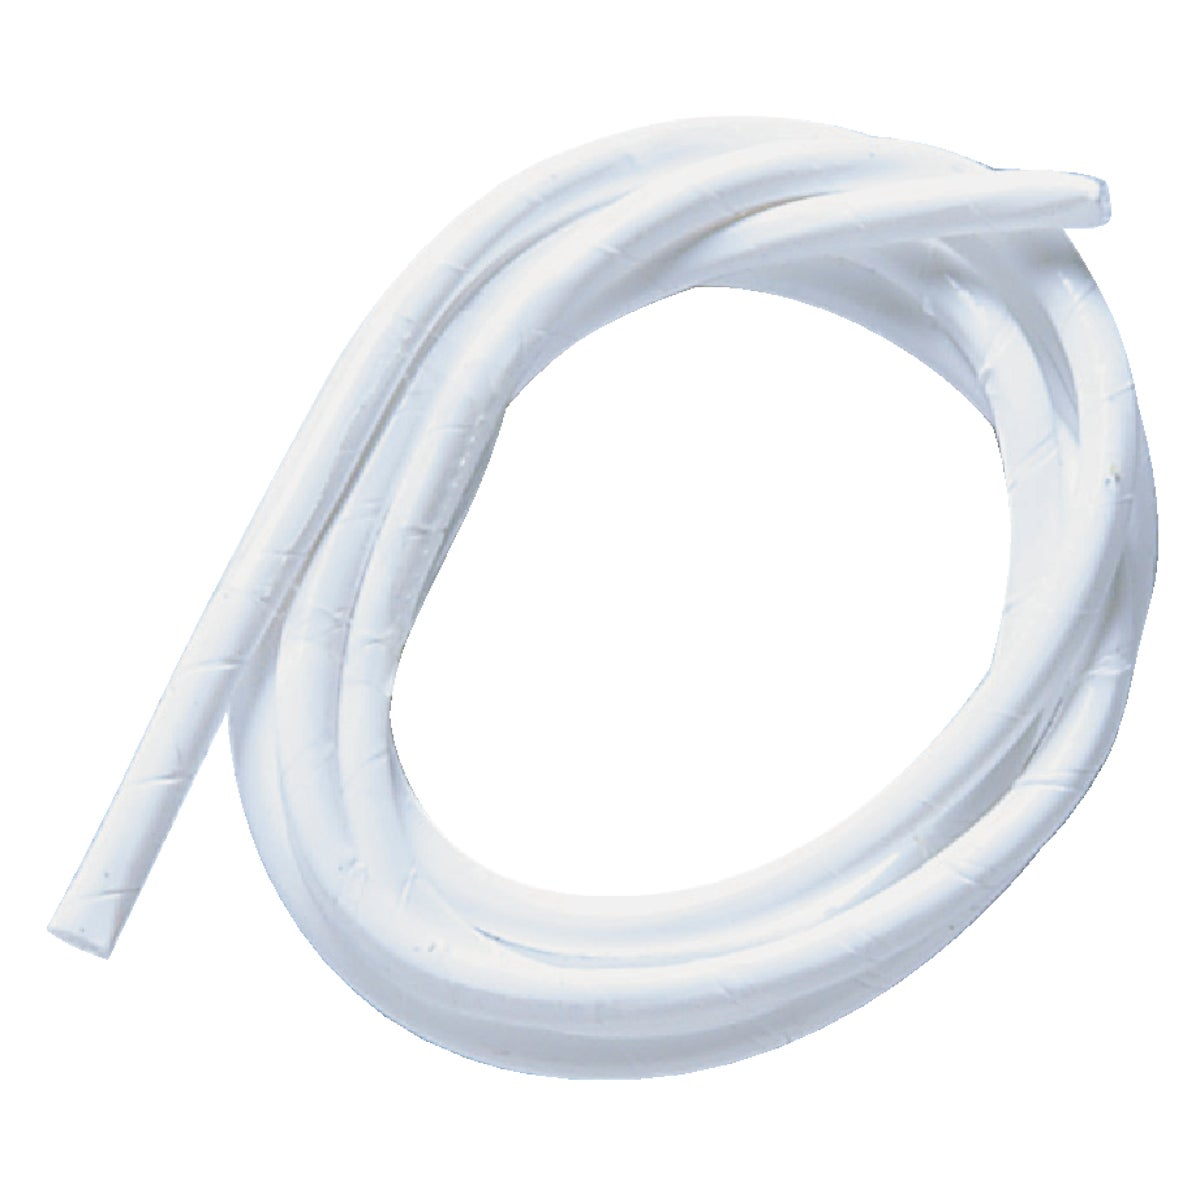 PTFE STRING - 020037 by Wm H Harvey Co